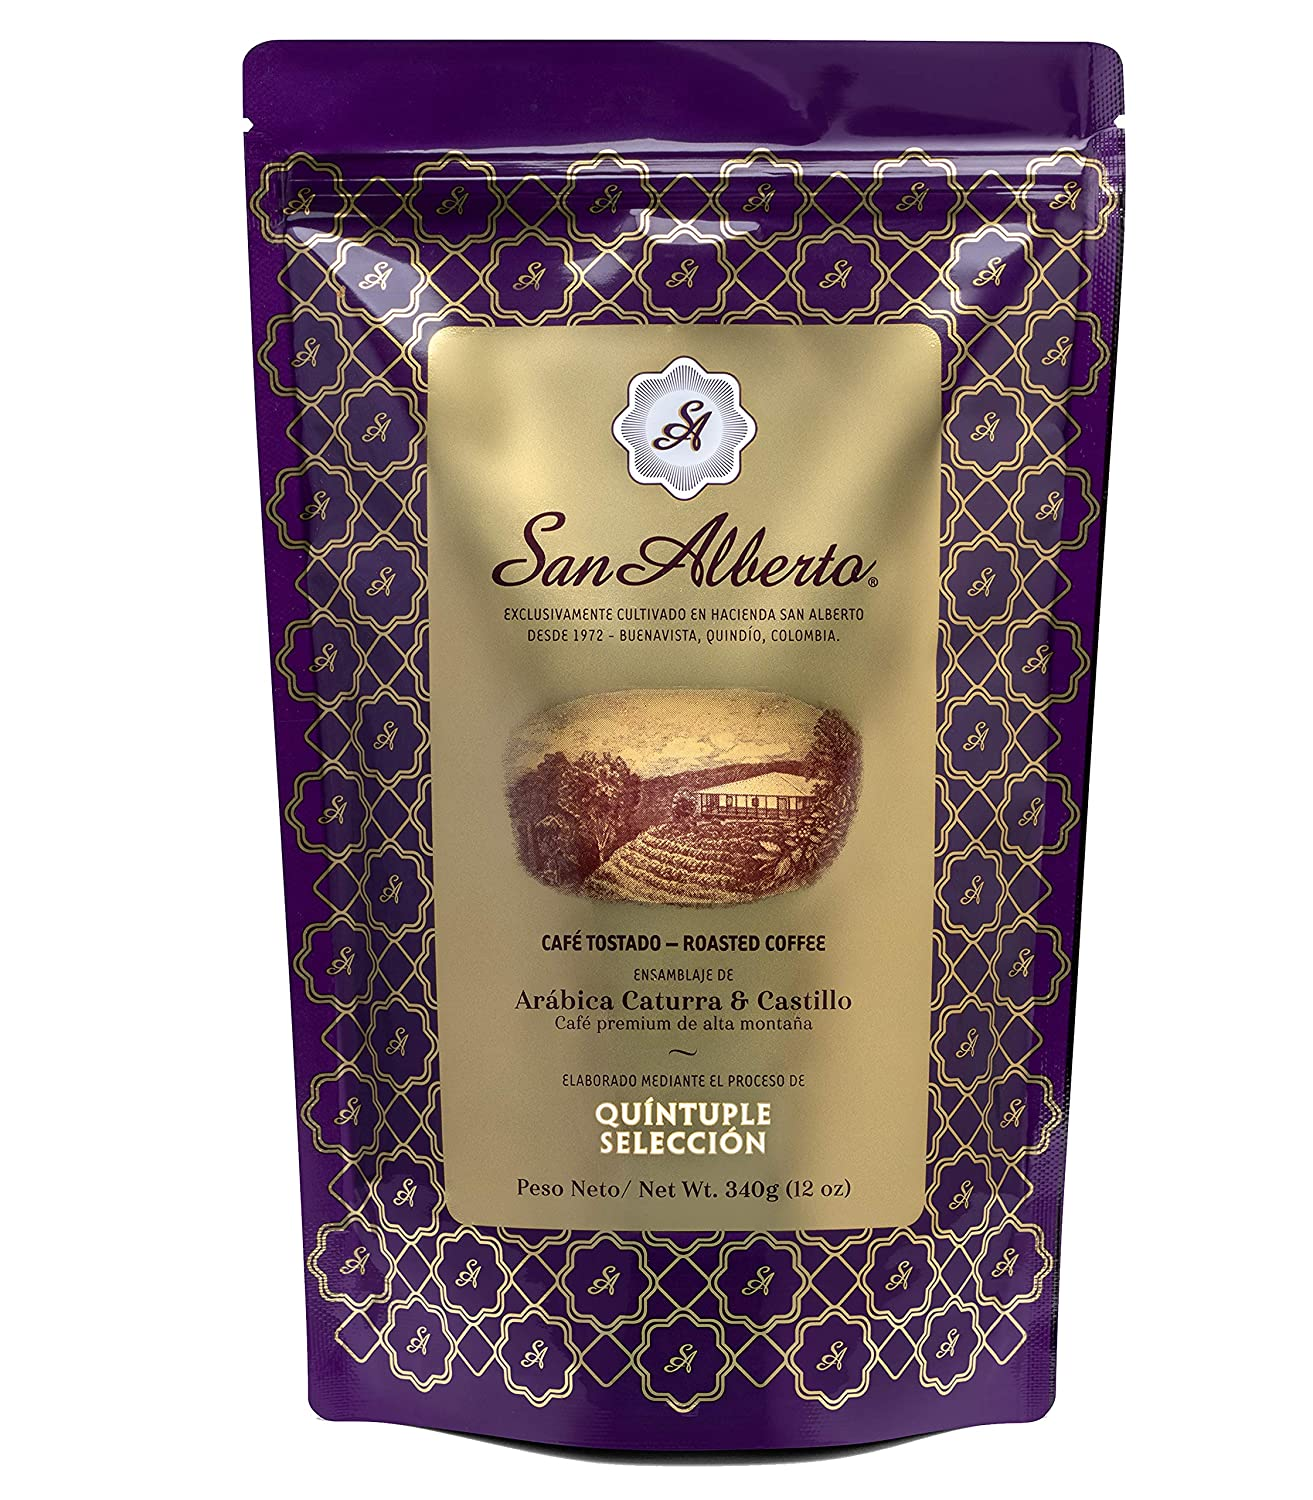 San Alberto Premium Coffee, Most Awarded Single Origin Specialty Colombian Coffee, 12 oz